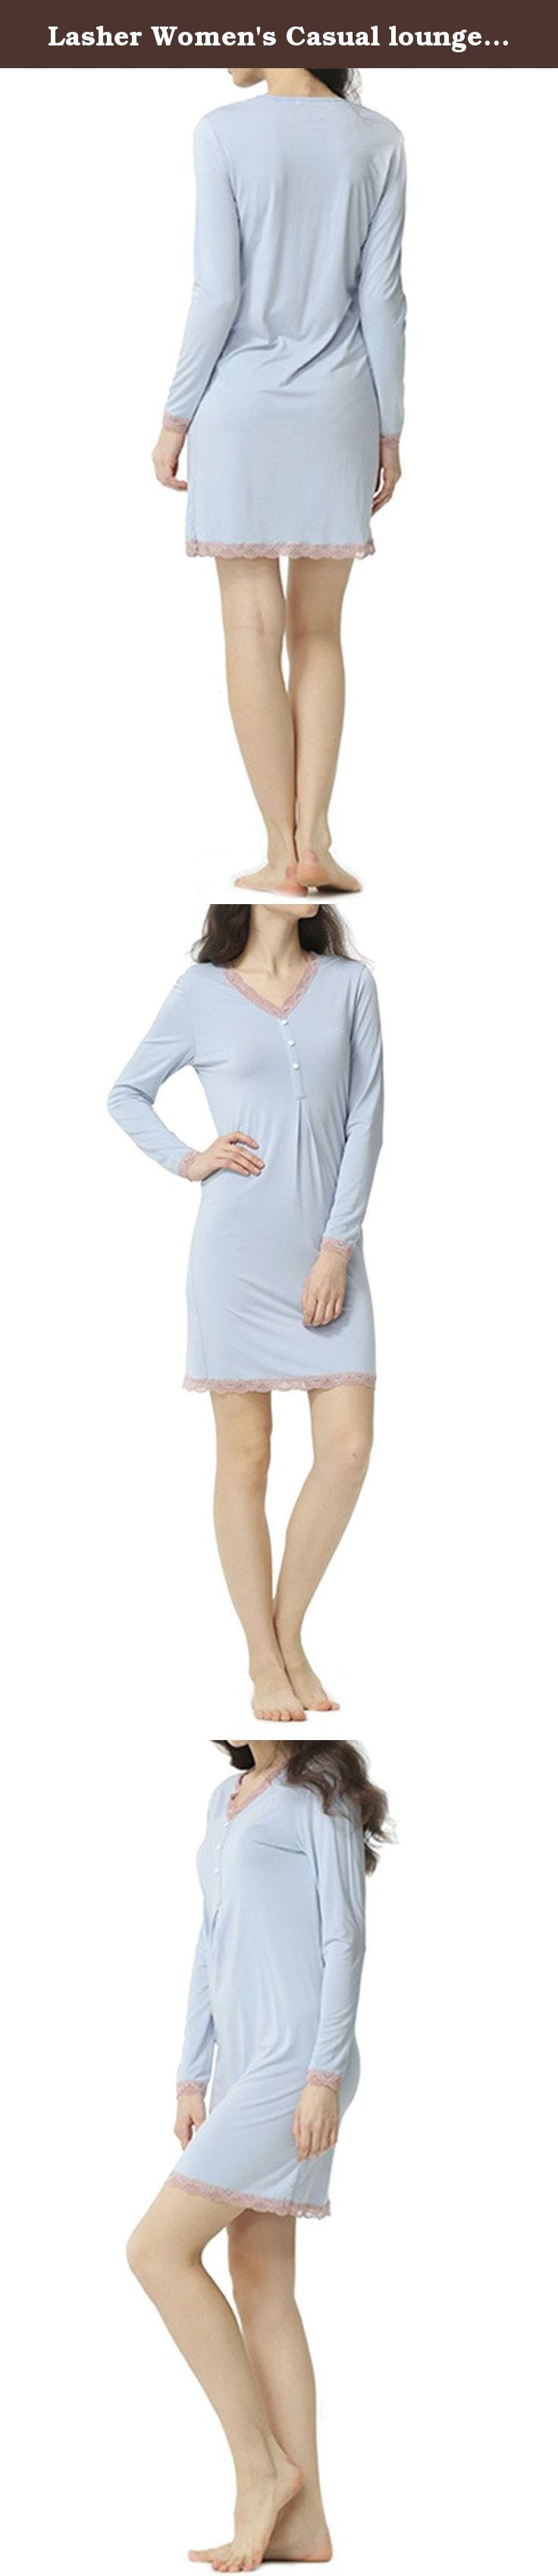 "Lasher Women's Casual loungewear Lace Knit Cotton Nightgown Cute Sleepwear Dress Blue M. Size Measurement: Size S(Asian size M): Bust:33.1"",Waist:30.7"",Length:34.6"" Size M(Asian size L):Bust:34.6"",Waist:32.2"",Length:35.4"" Size L(Asian size XL):Bust:36.2"",Waist:33.8"",Length:36.2"" Size XL(Asian size XXL):Bust:37.8"",Waist:35.4"",Length:37"" Size may be 2cm/1 inch inaccuracy due to hand measure. If you are not sure, please contact us freely! Package Content:1 x Women Sexy Sleepwear Notice: The..."